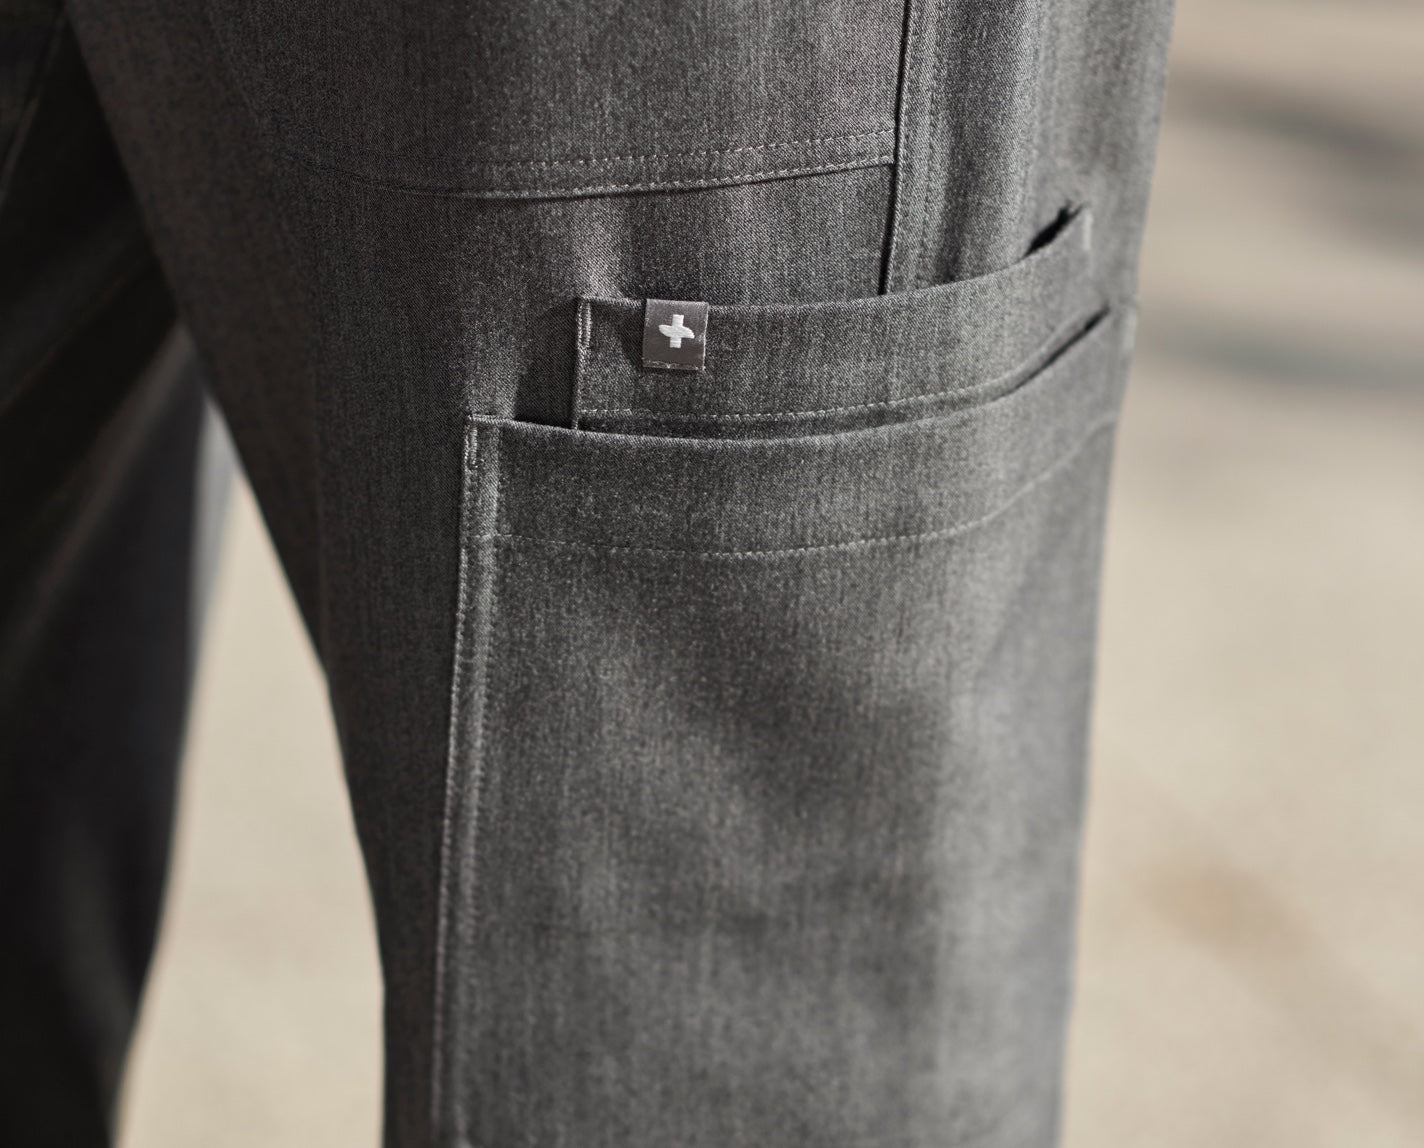 Wearable technology meets workwear. The structured, straight-legged Axim features our proprietary FIONx fabric, seven pockets and a comfy interior drawcord.